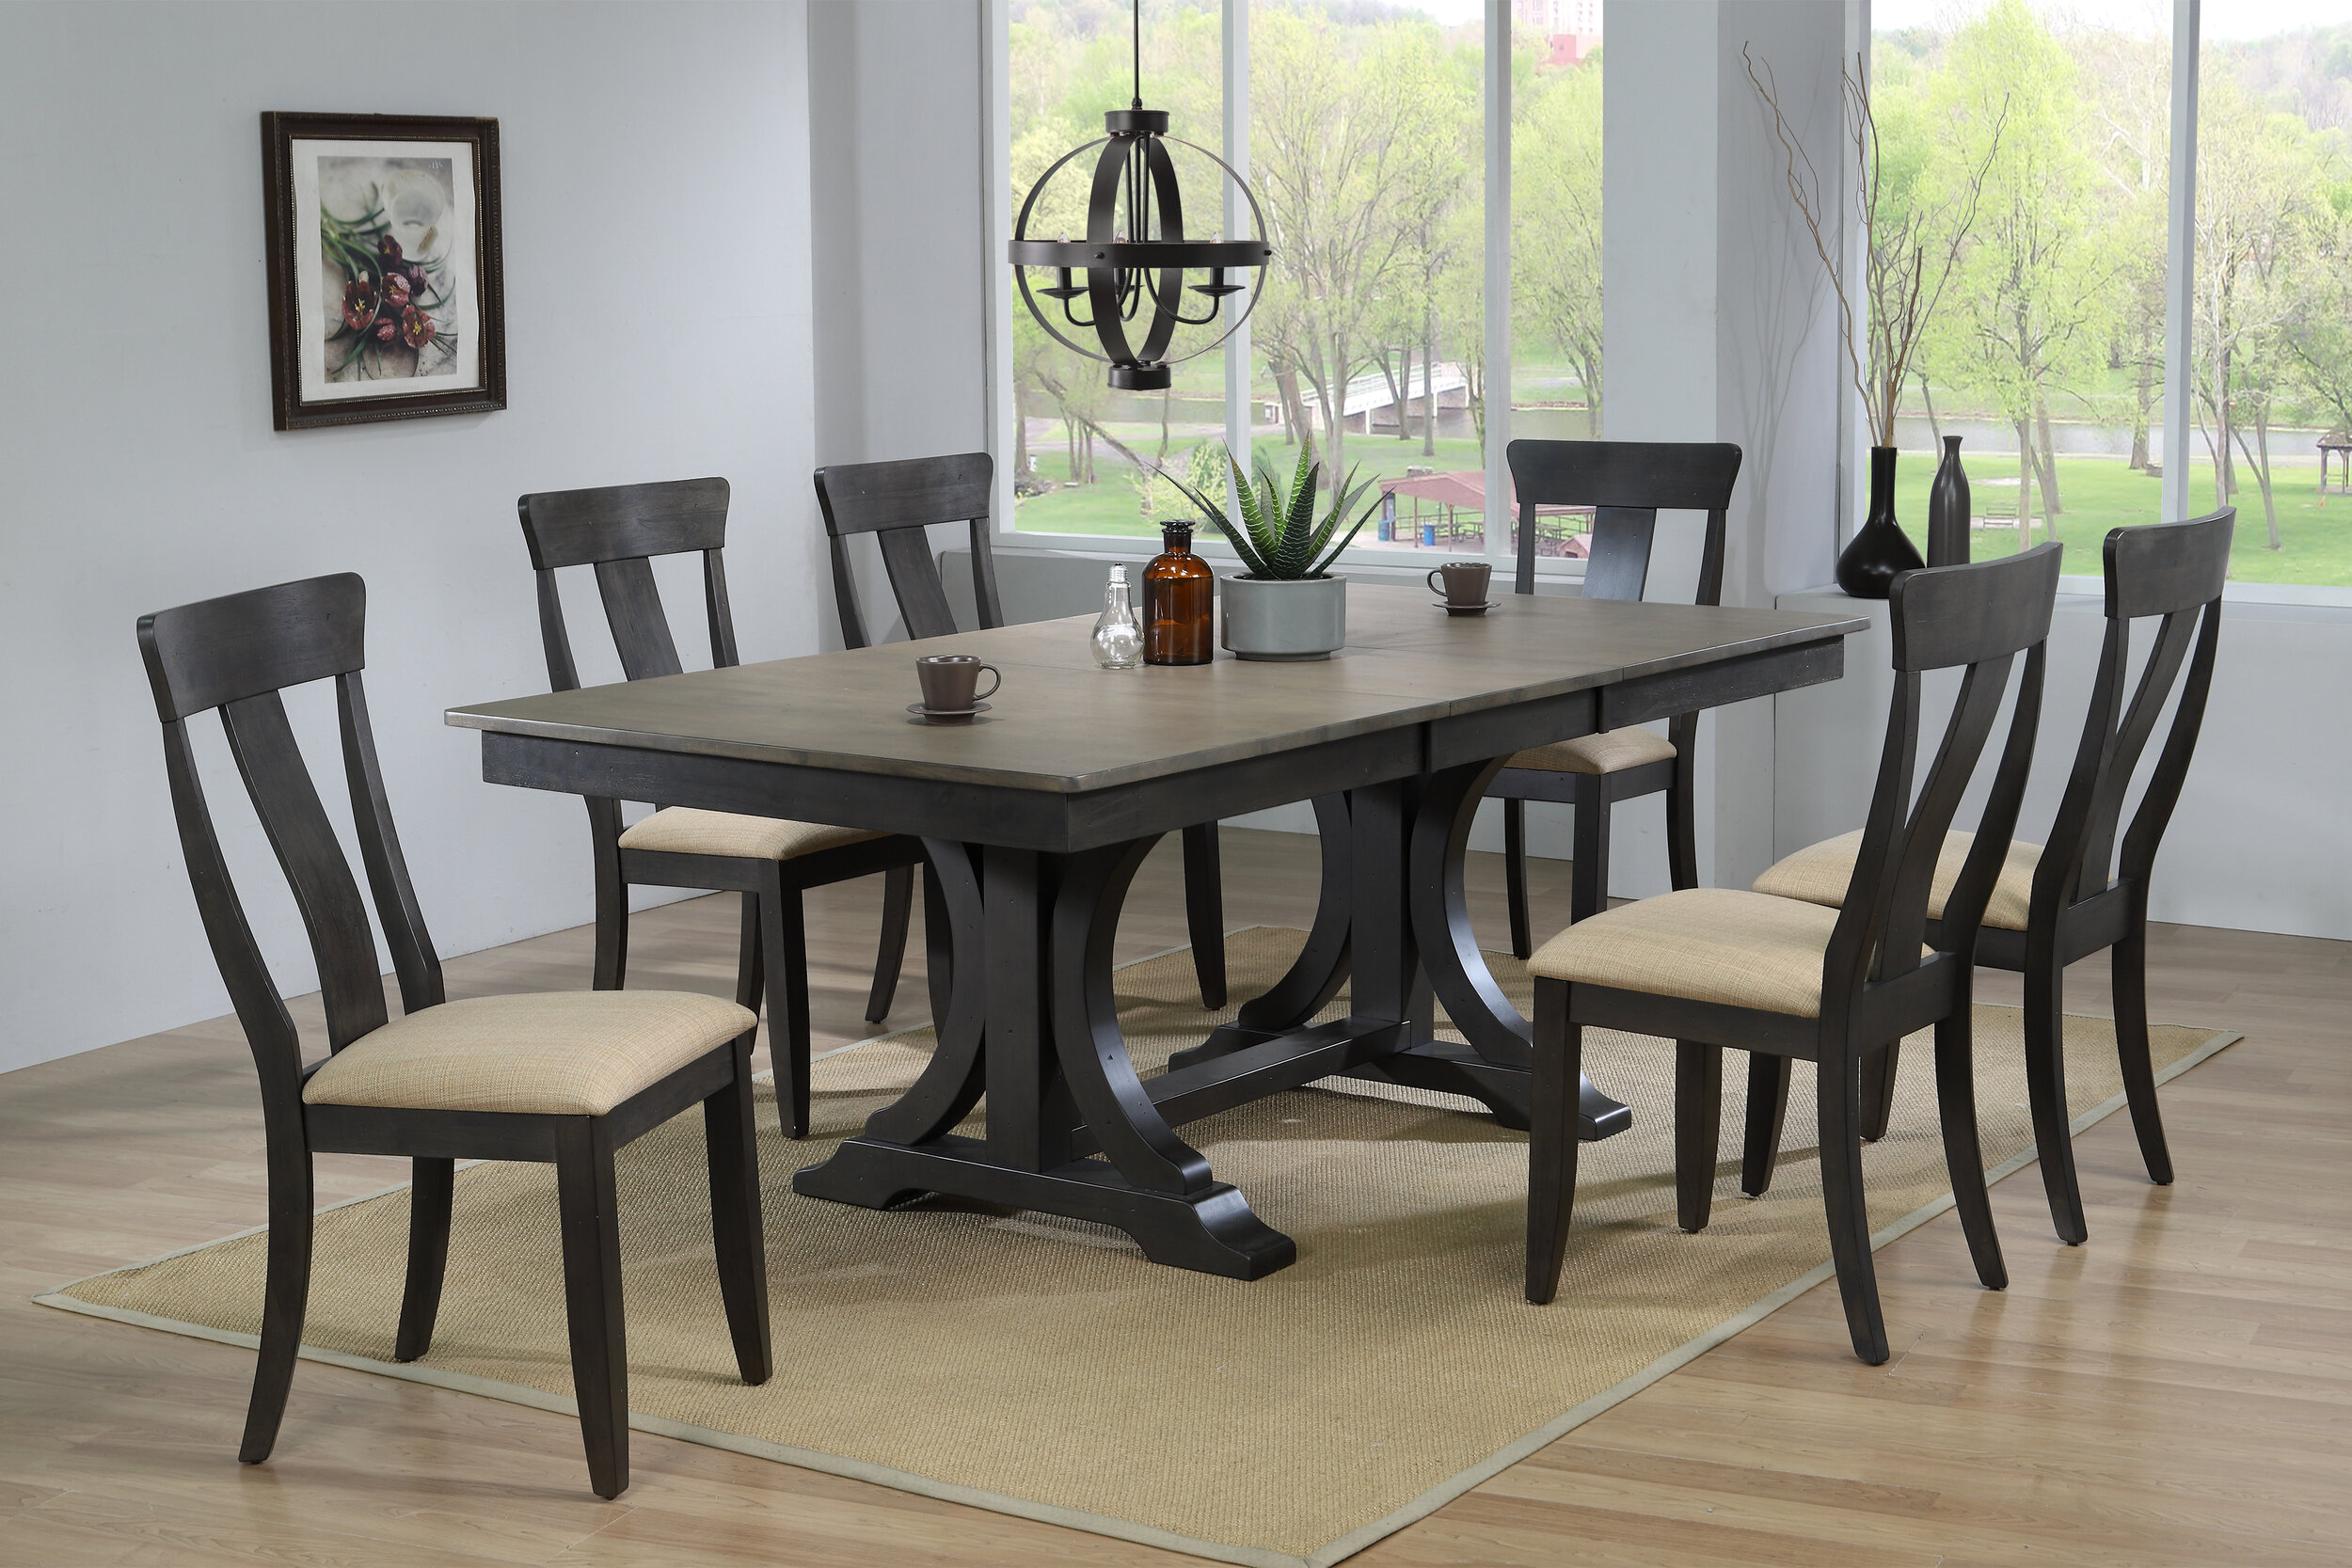 "42""x64""x82"" Double Pedestal Deco Antique Grey Stone Black Stone Upholstered Panel Back (7-Piece Dining Set)"